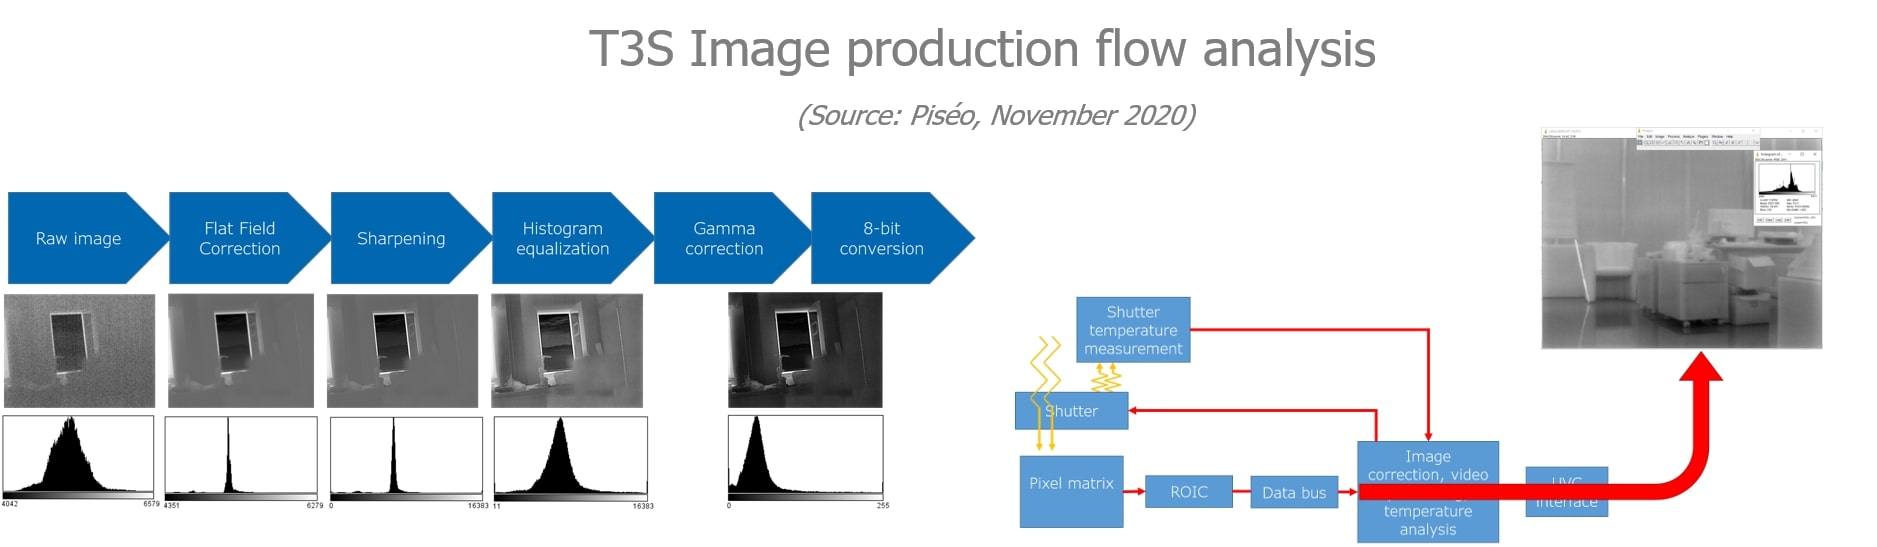 T3S Image production flow analysis